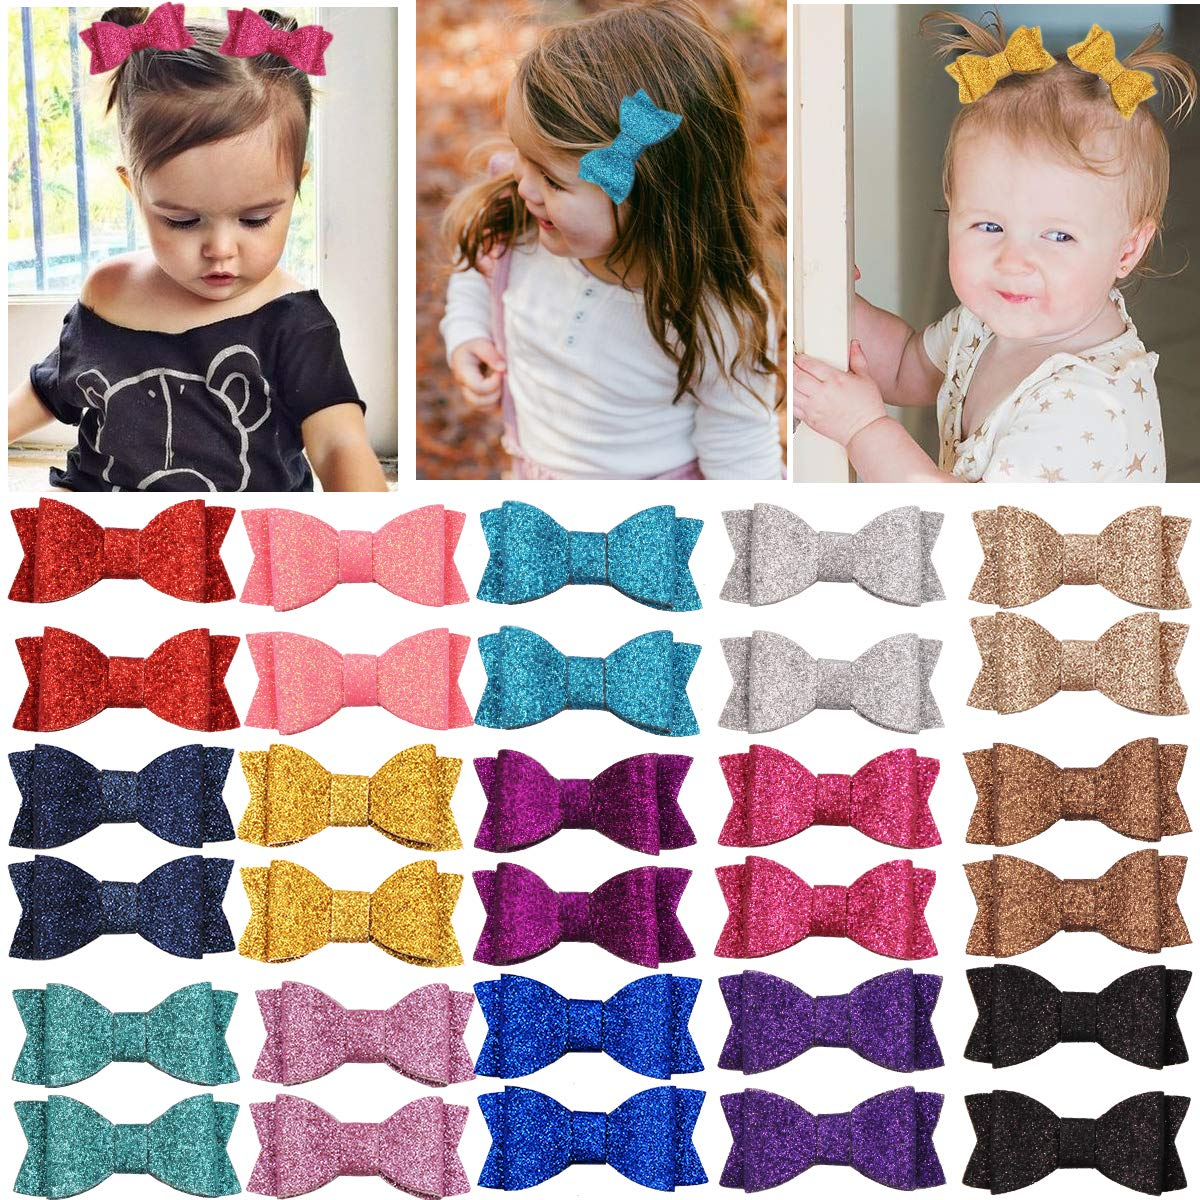 30PCS Attention brand 2.75'' Baby Girls Pigtail Sparkly Sequin Max 80% OFF Bows Glitter Hair